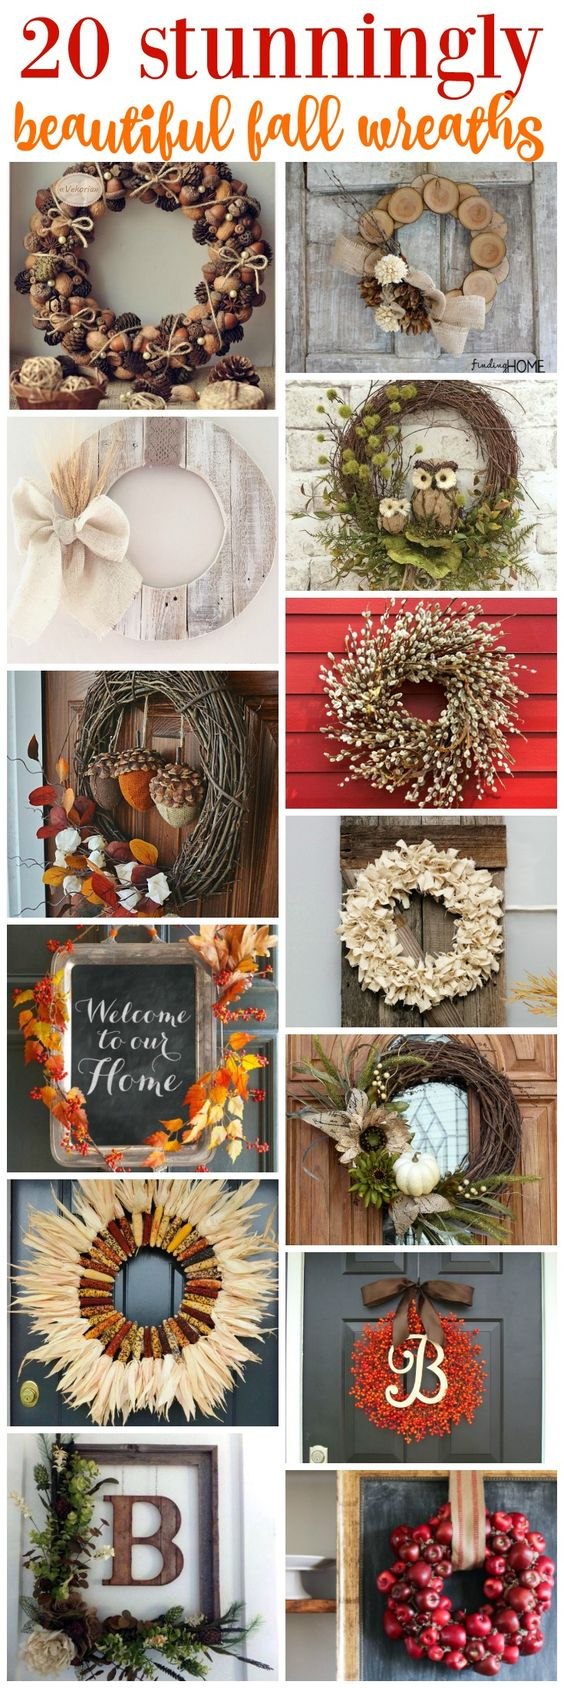 20-stunningly-beautiful-fall-wreaths | Blogger Home Projects We ...